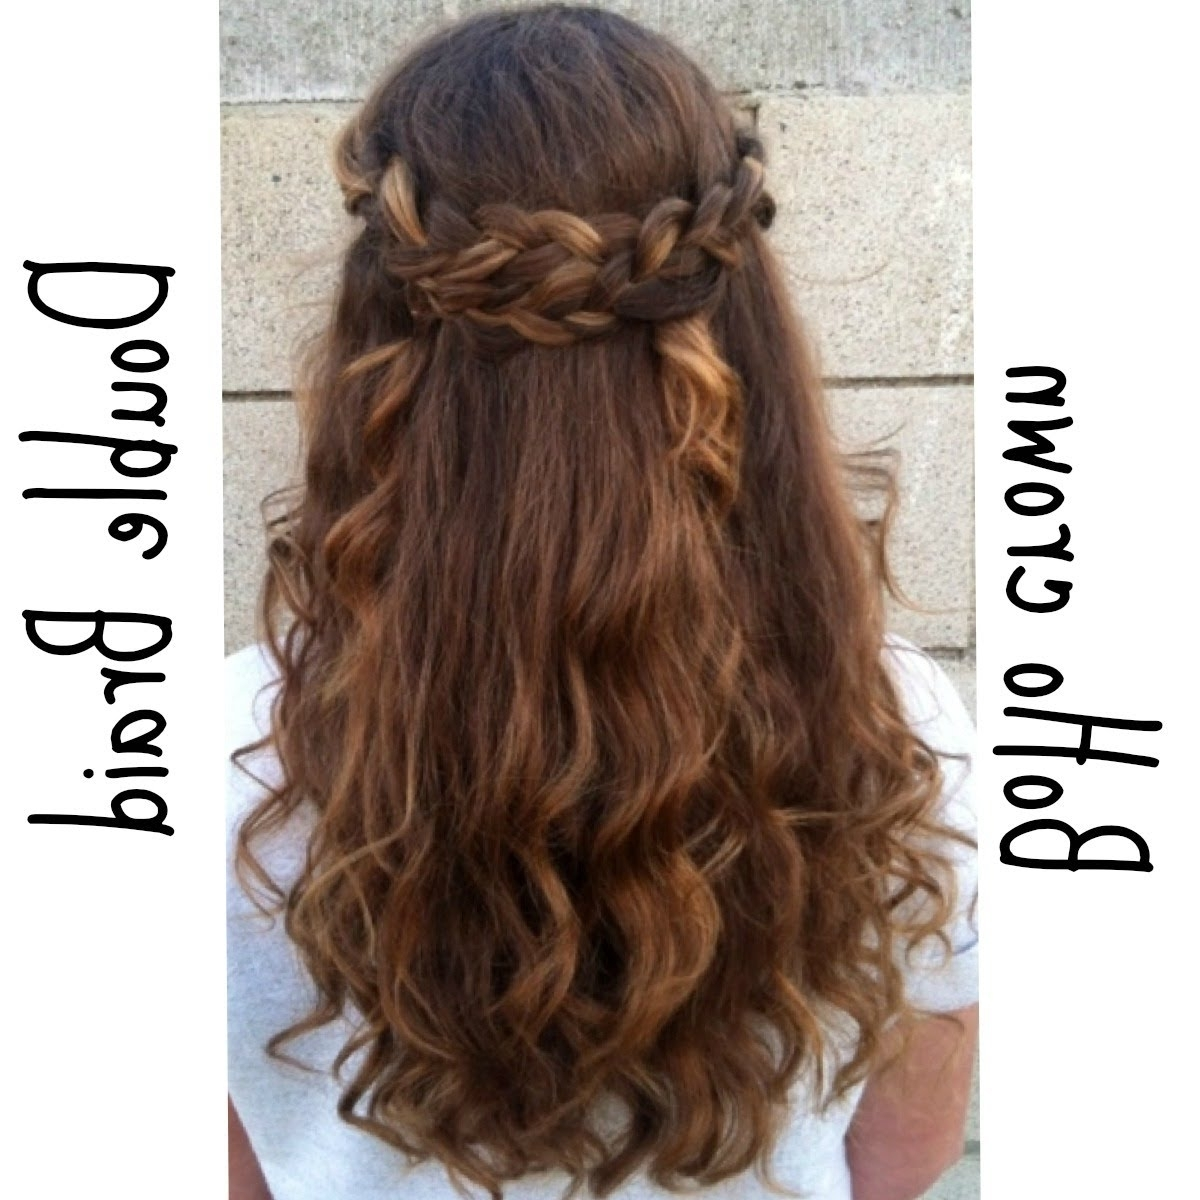 Braided Half Up Half Down Hairstyle – Youtube With Best And Newest Half Up And Braided Hairstyles (View 3 of 15)